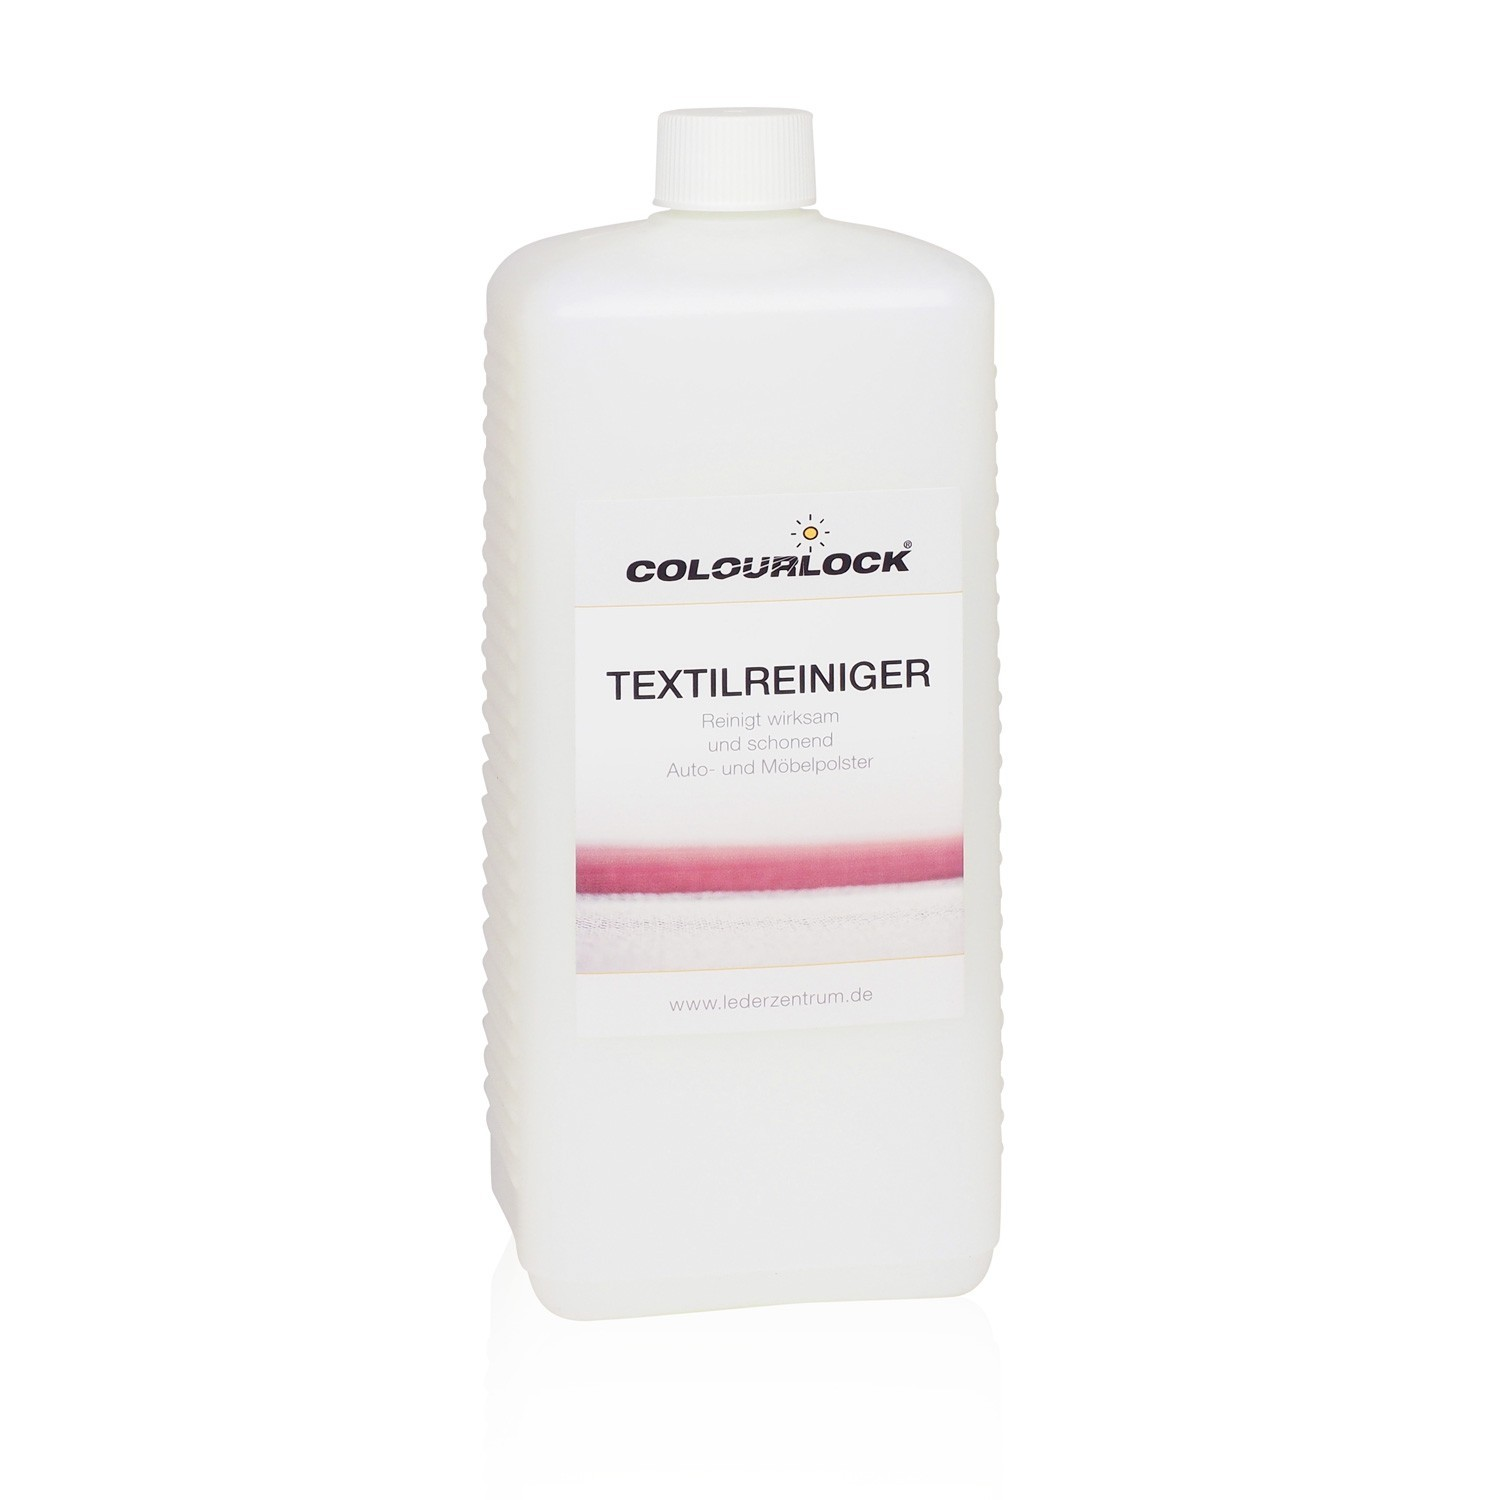 1000ml Colourlock Textilreiniger